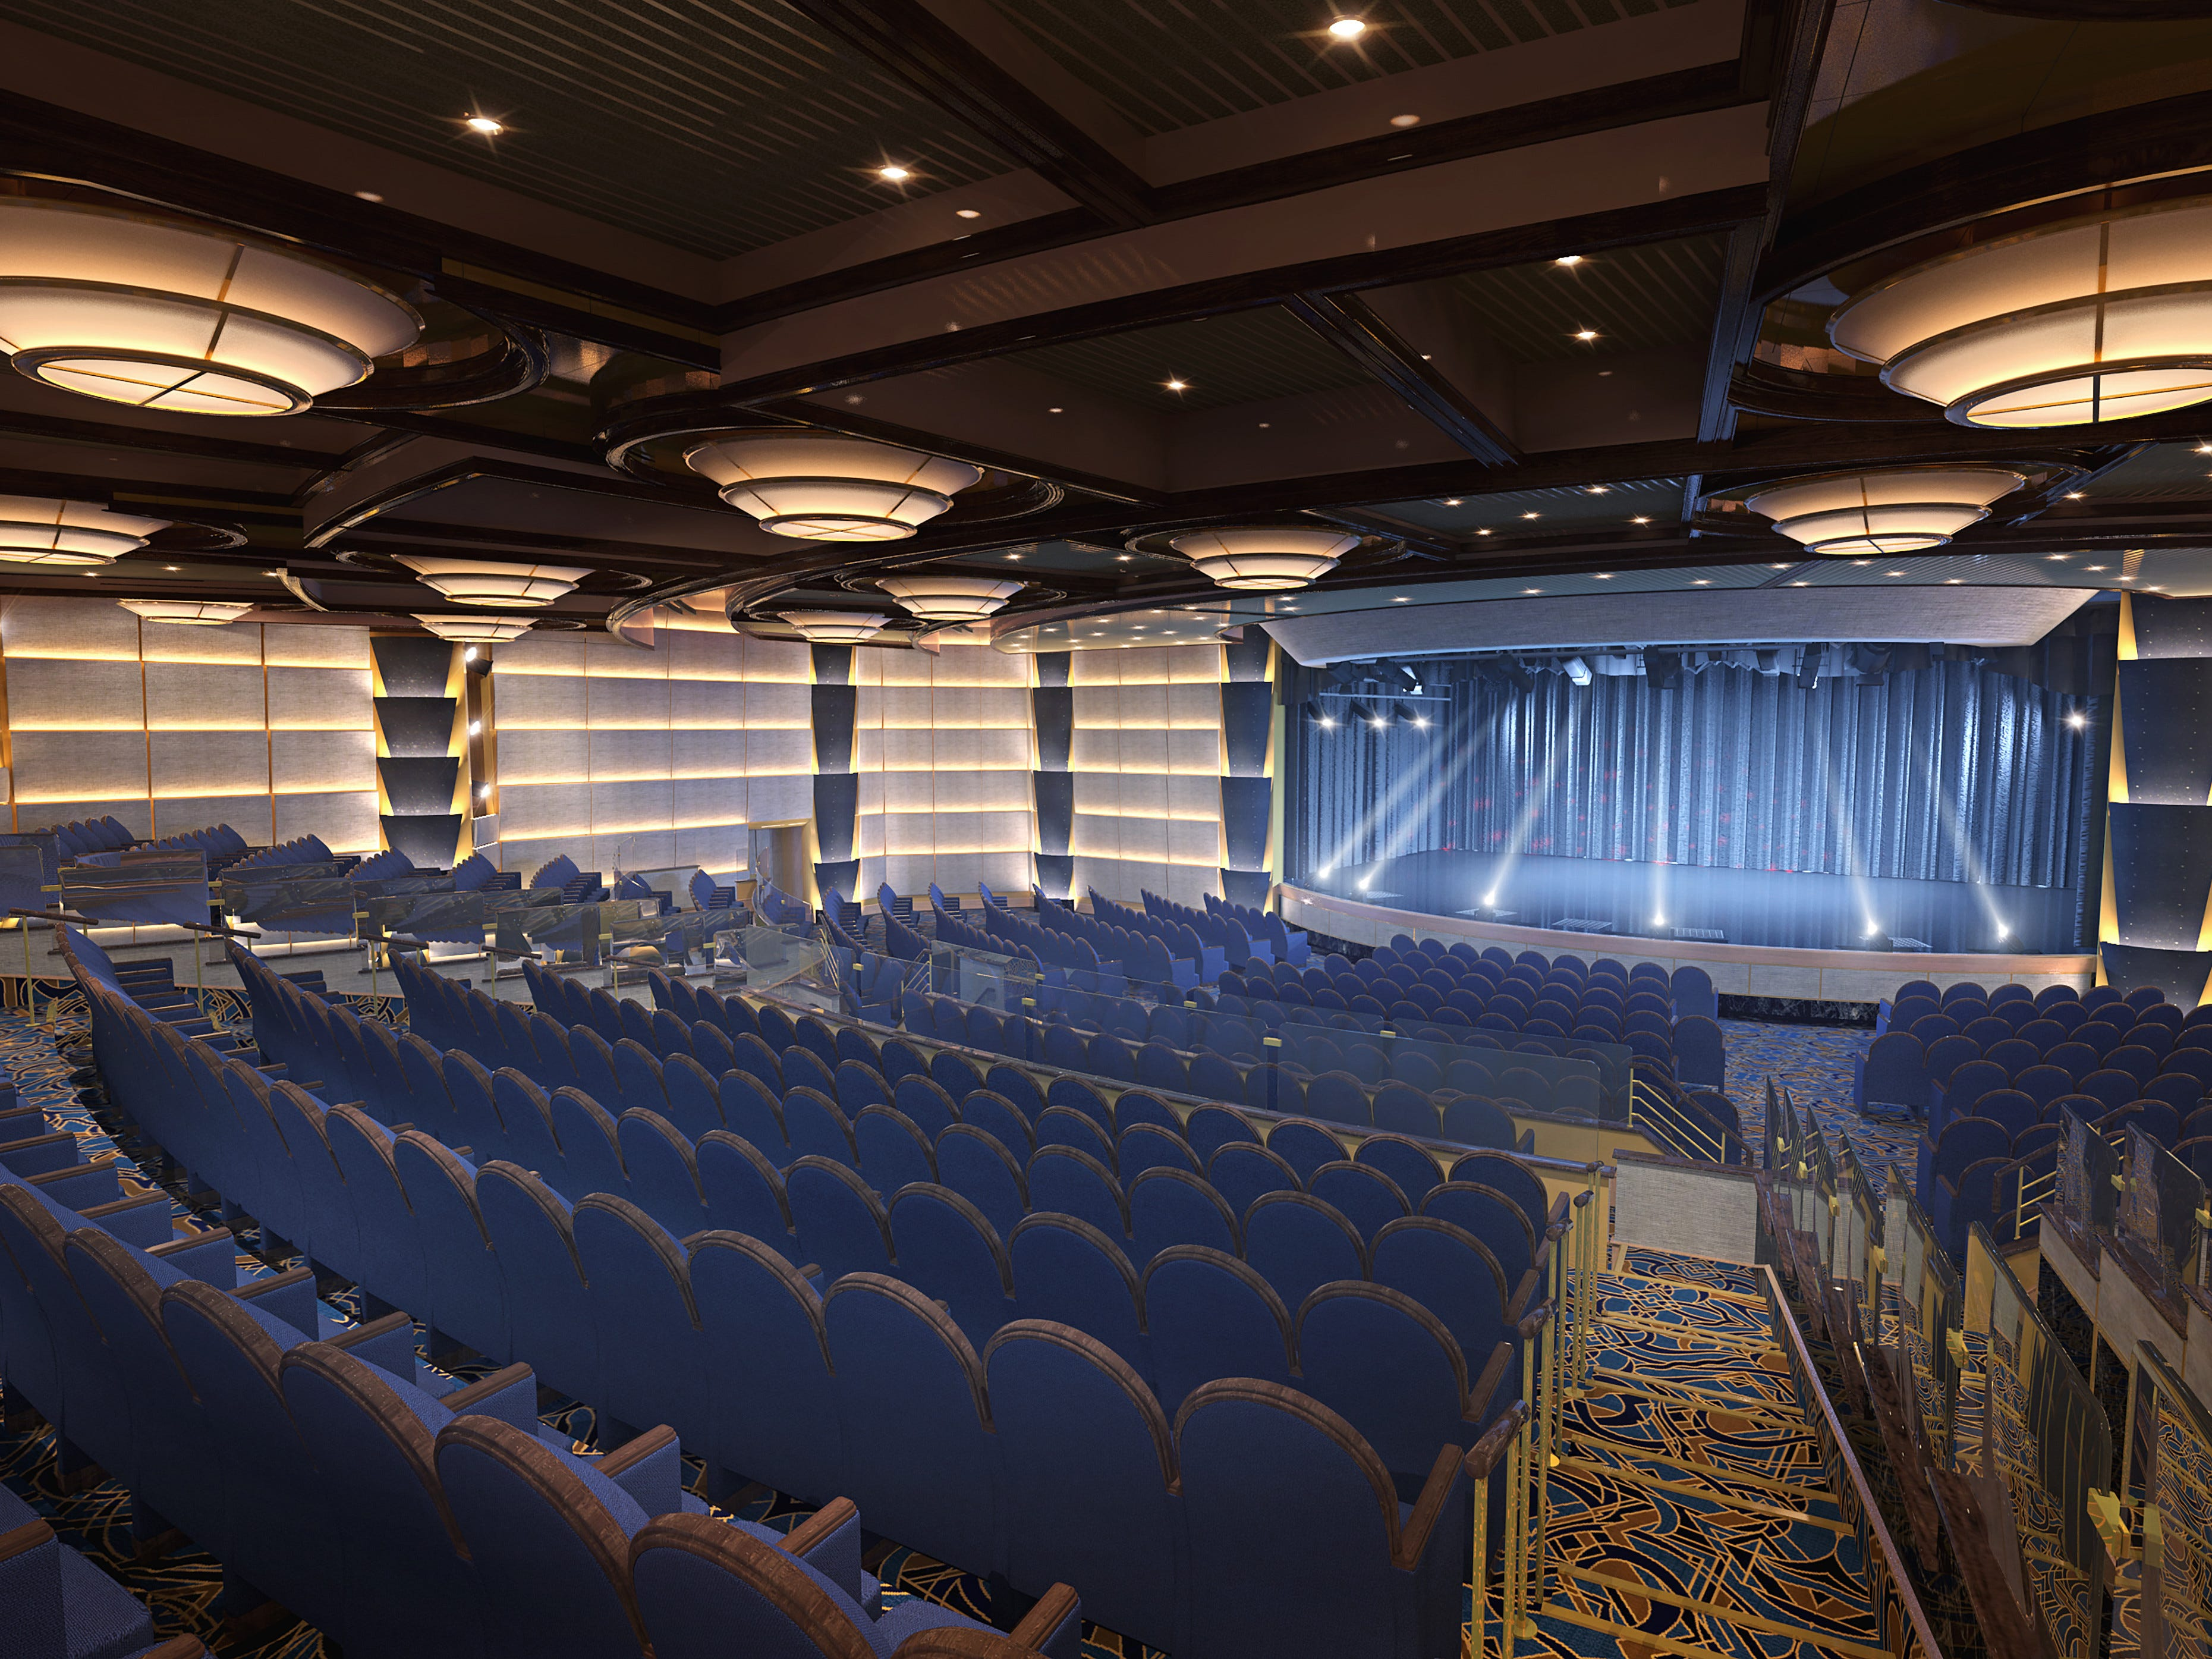 The Princess Theatre on Sky Princess is home to big production shows with elaborate sets.